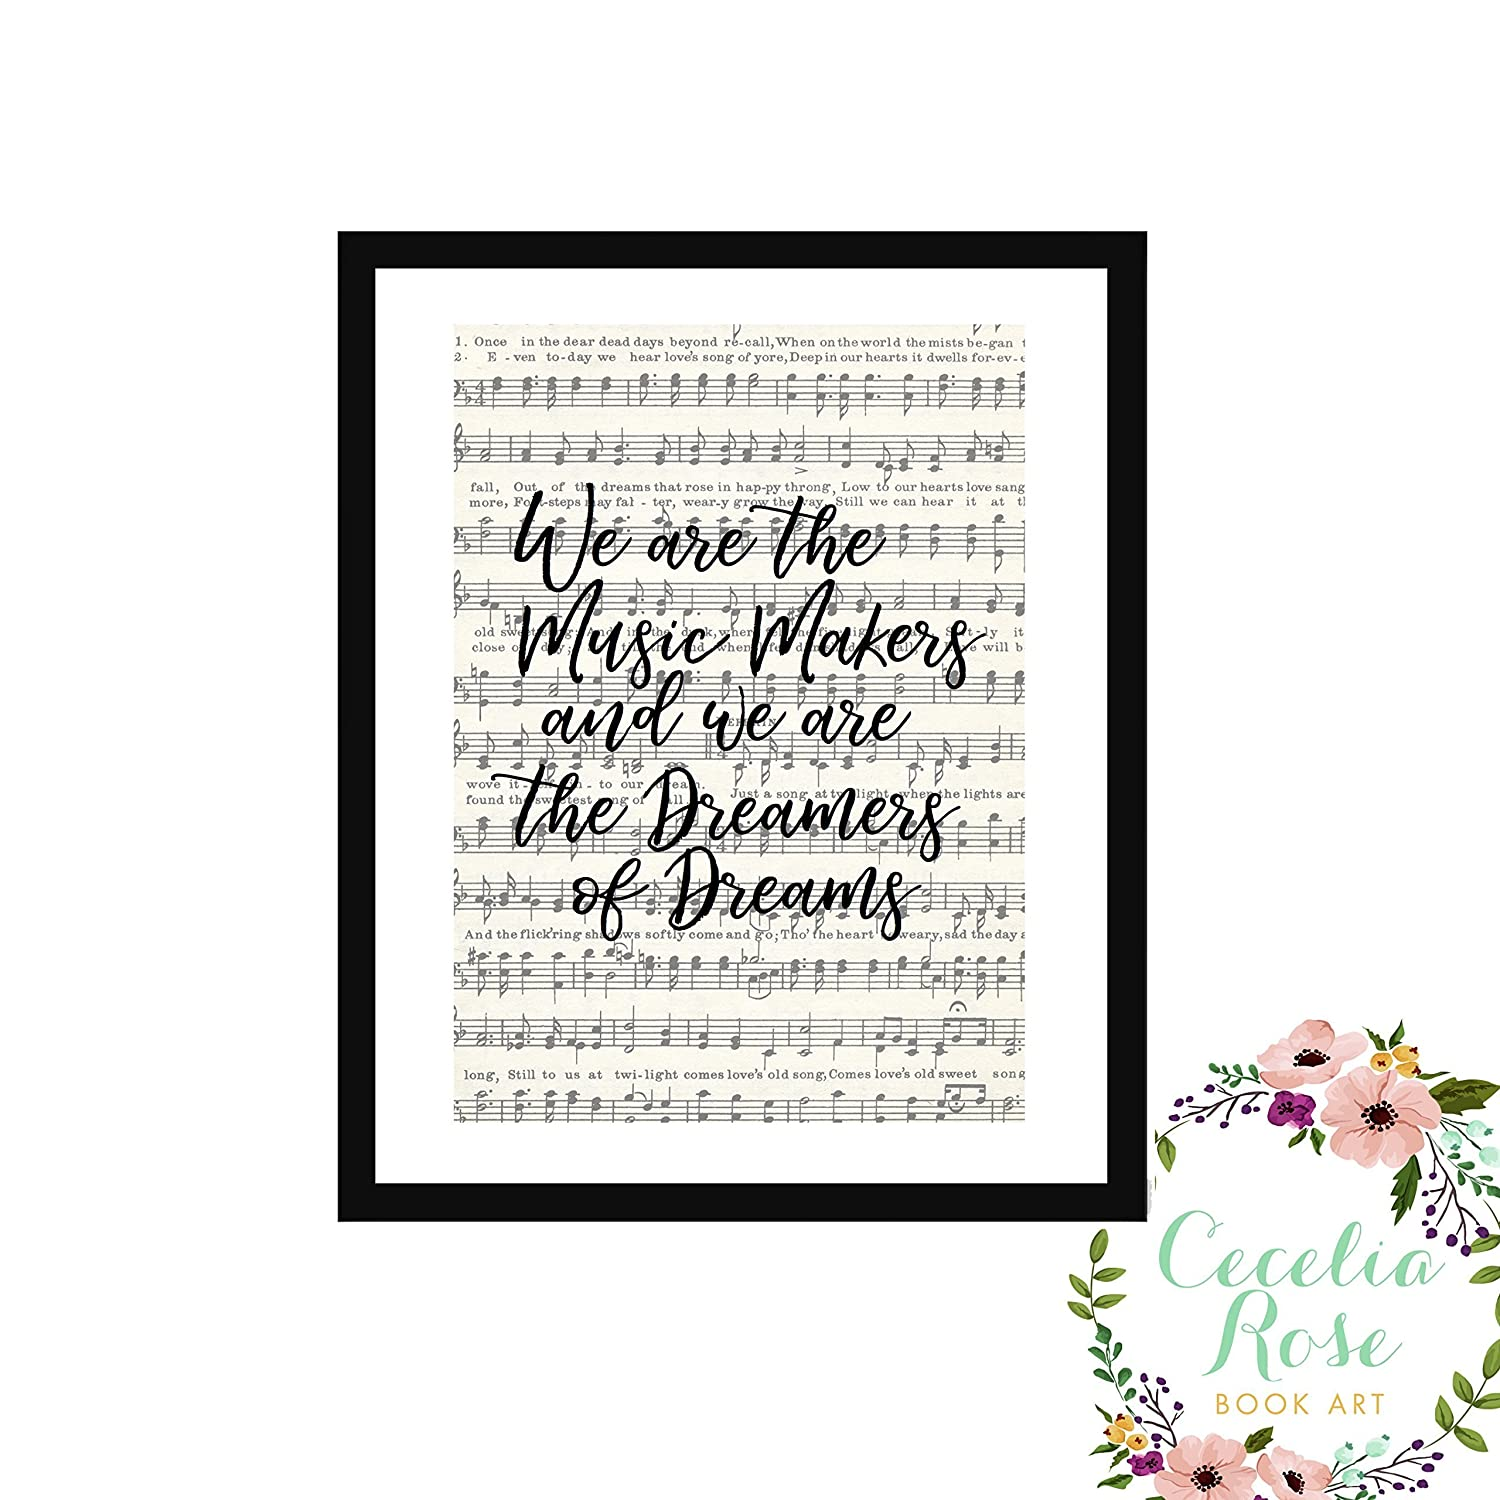 We are the music makers and we are the dreamers of dreams Willy Wonka  Charlie and the Chocolate Factory Farmhouse Inspirational Quote Upcycled  Vintage